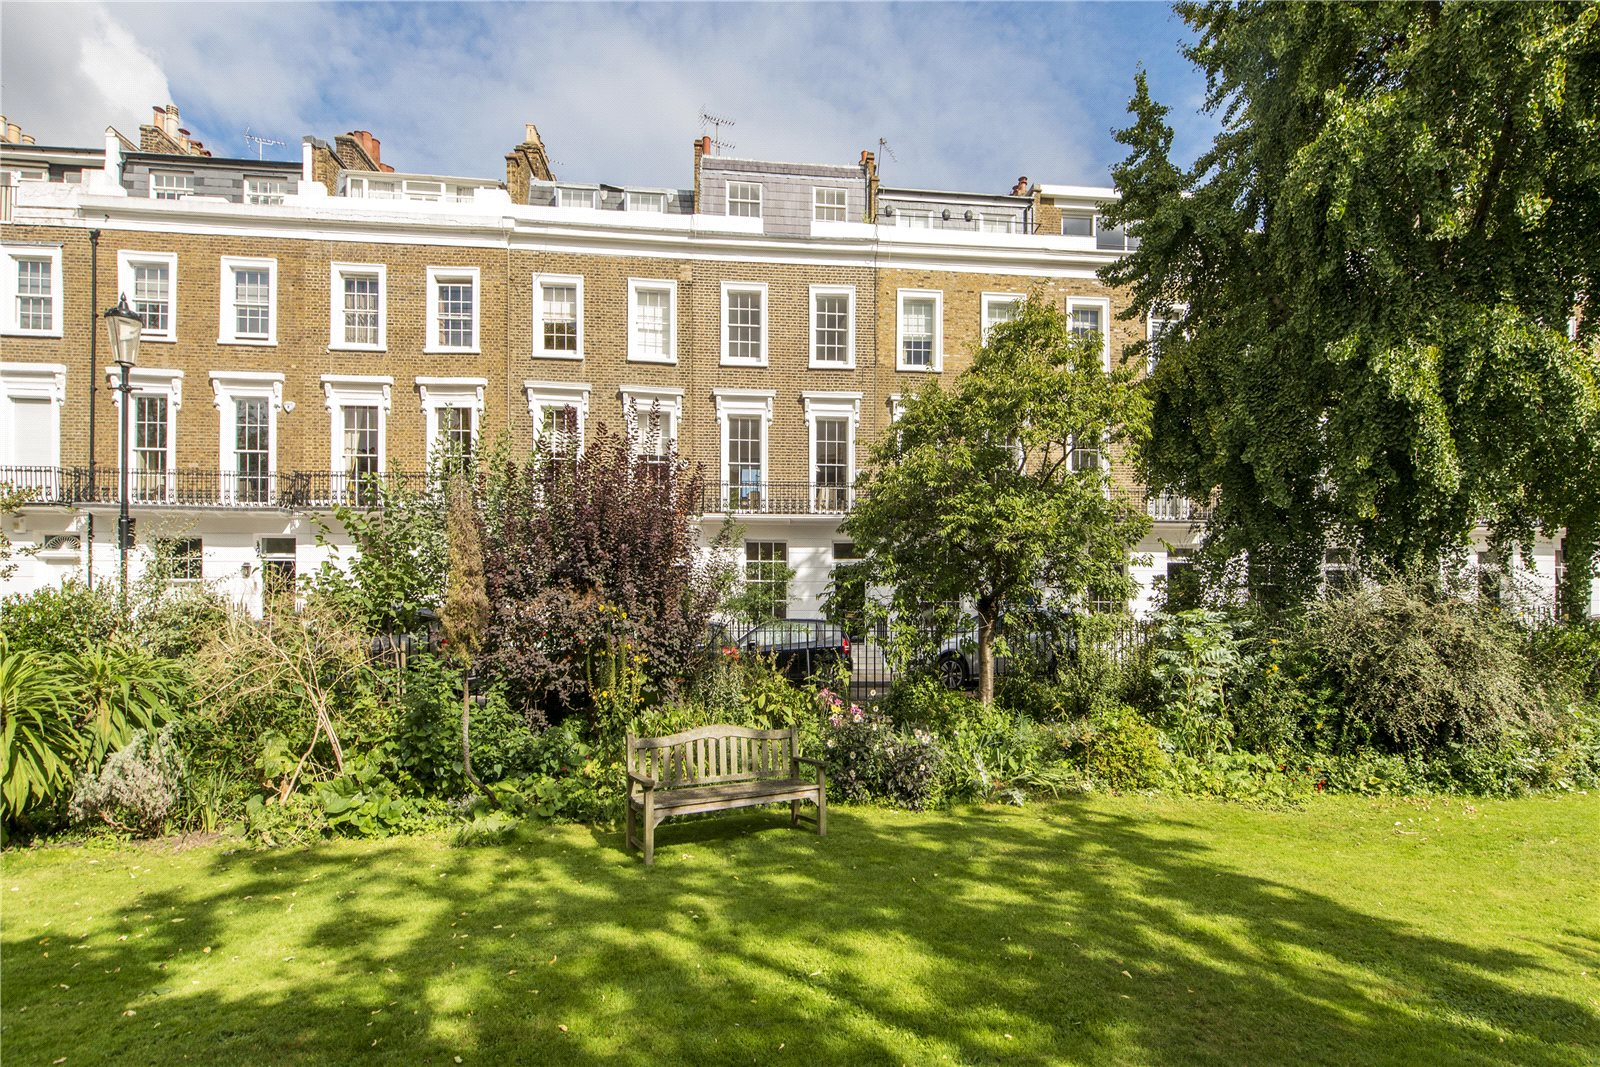 Single Family Home for Sale at Markham Square, London, SW3 London, England